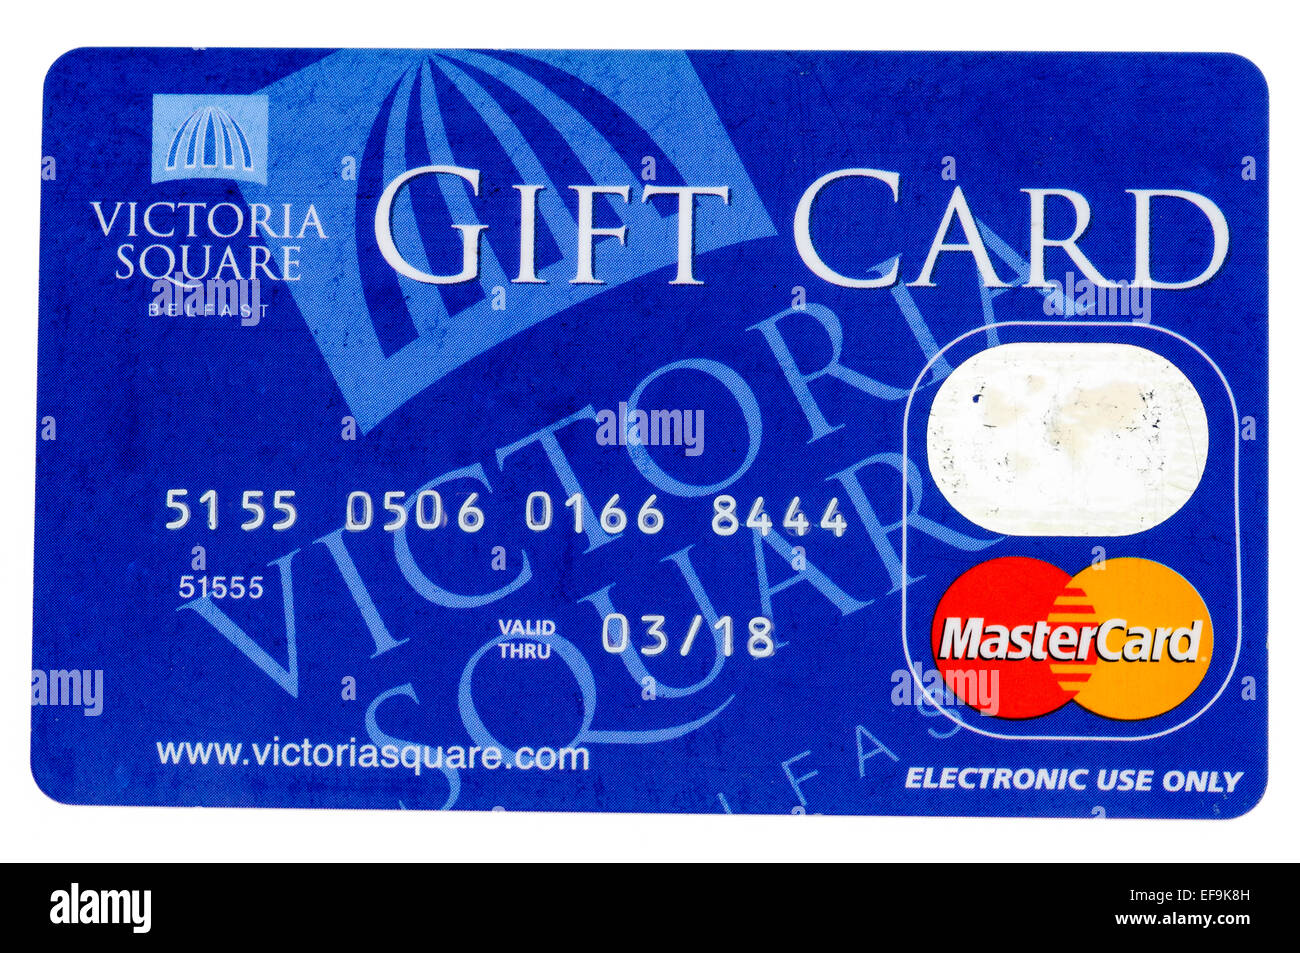 Mastercard giftcard from Victoria Square shopping centre, Belfast (number has been changed and is invalid) - Stock Image